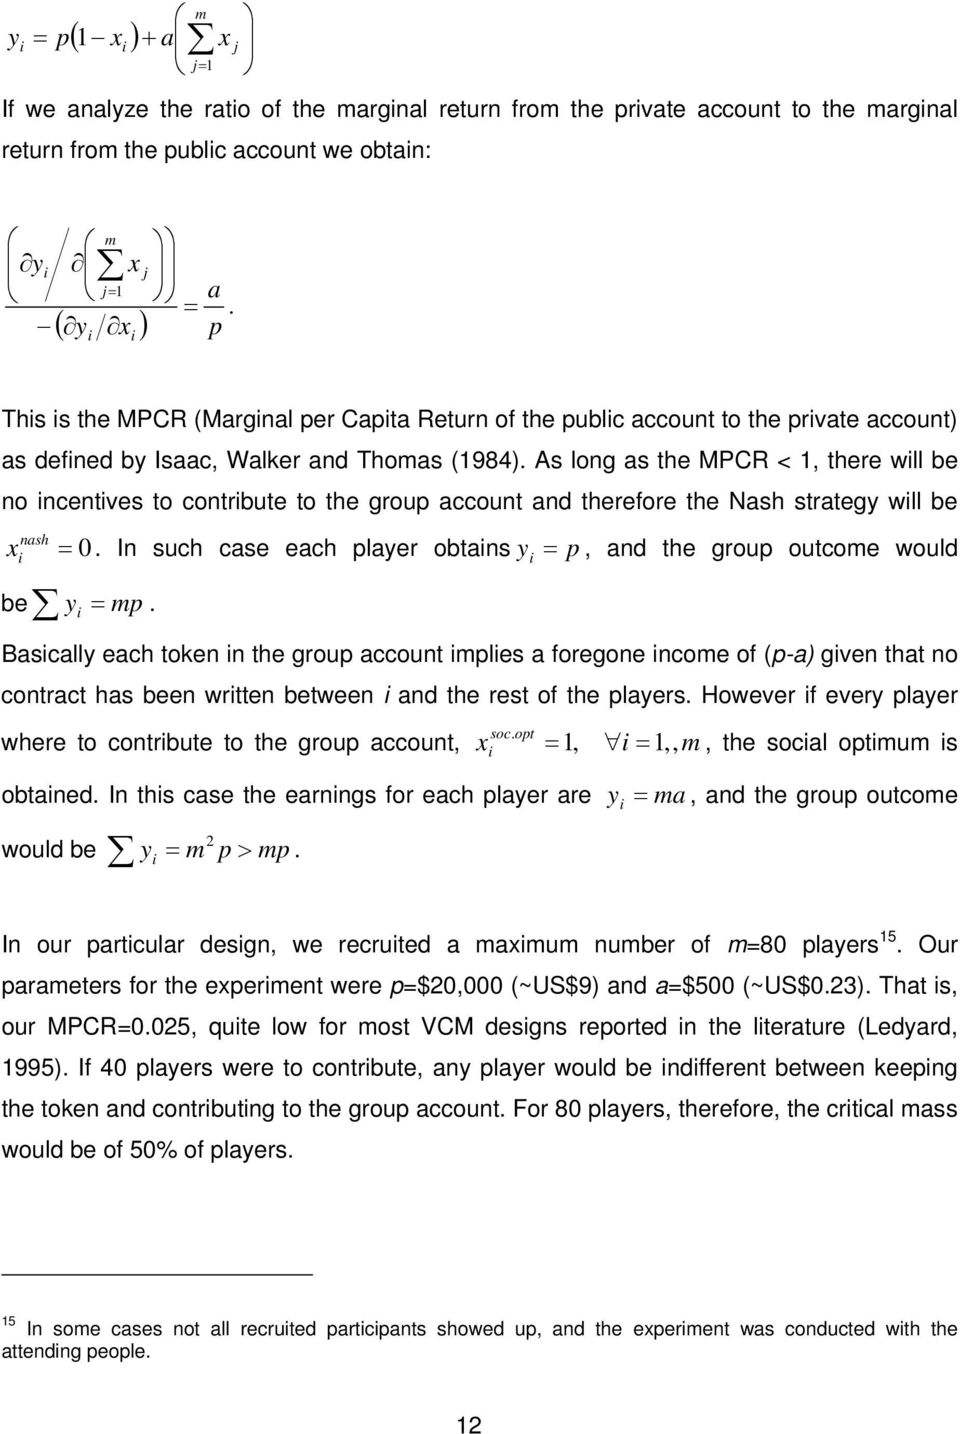 As long as the MPCR < 1, there will be no incentives to contribute to the group account and therefore the Nash strategy will be nash x i = 0.